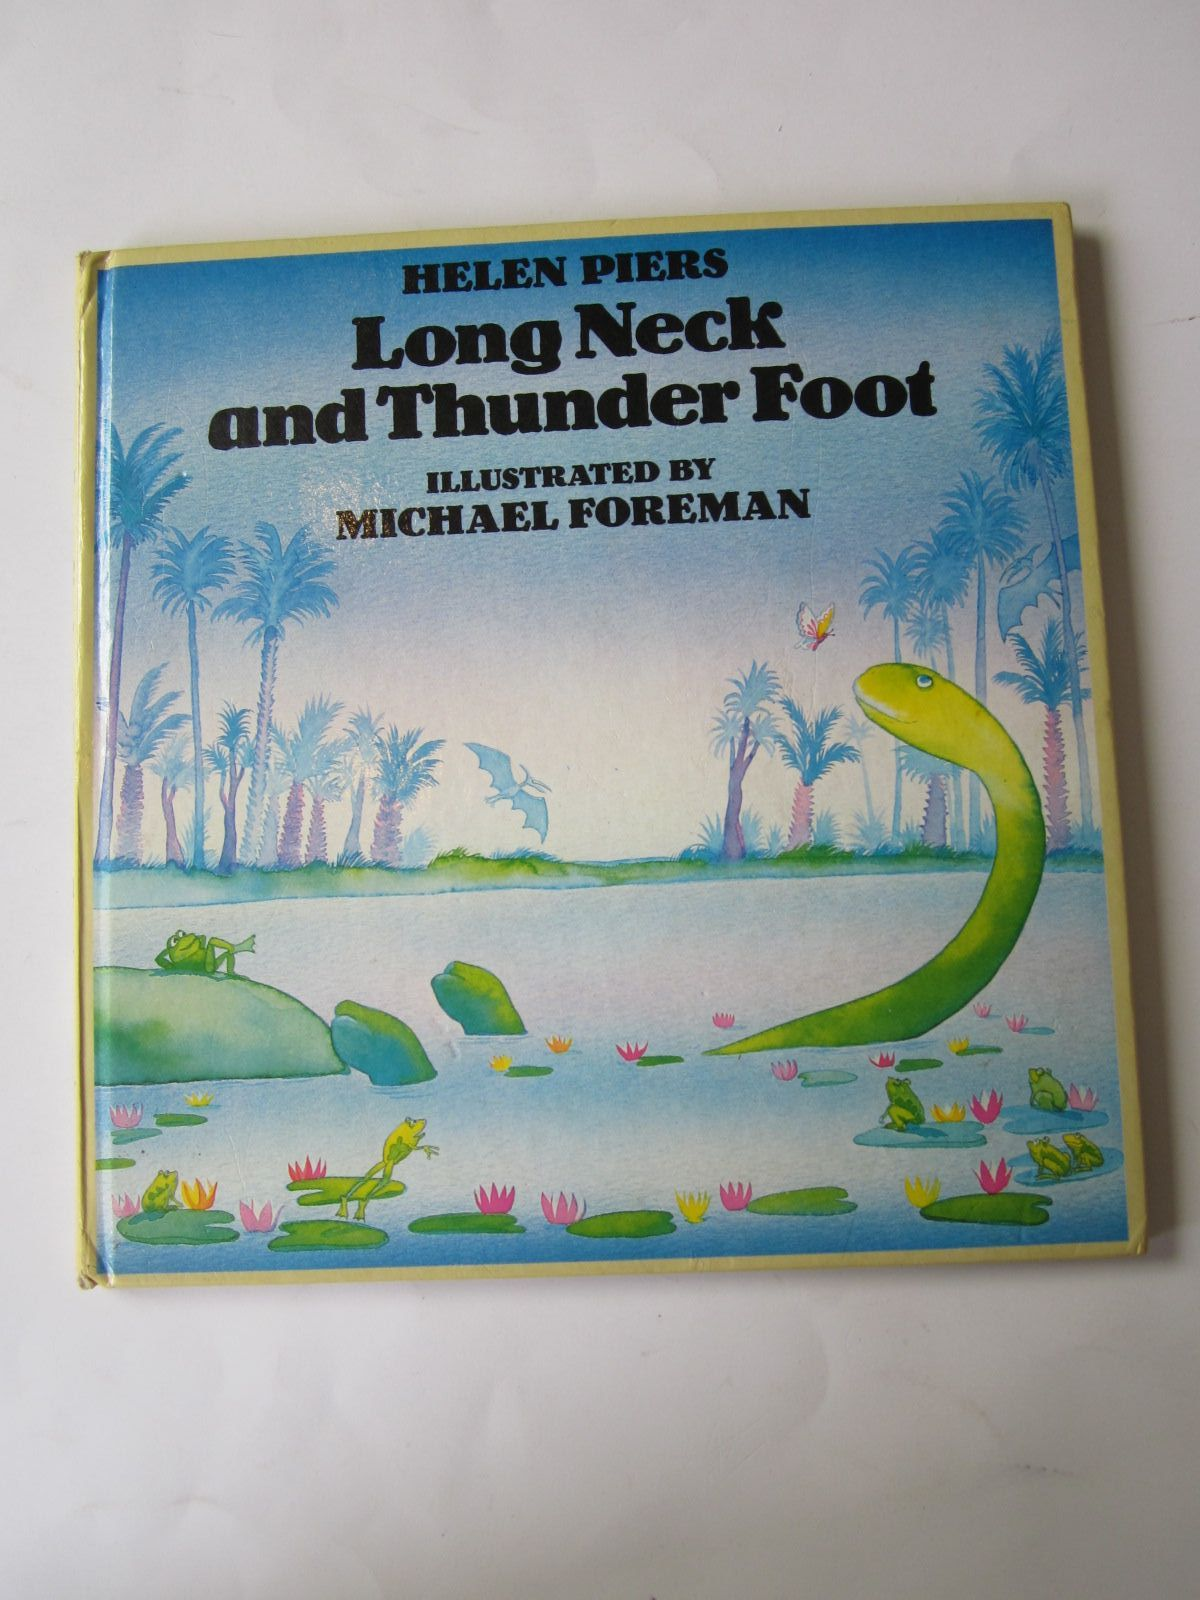 Photo of LONG NECK AND THUNDER FOOT written by Piers, Helen illustrated by Foreman, Michael published by Kestrel Books (STOCK CODE: 1501119)  for sale by Stella & Rose's Books